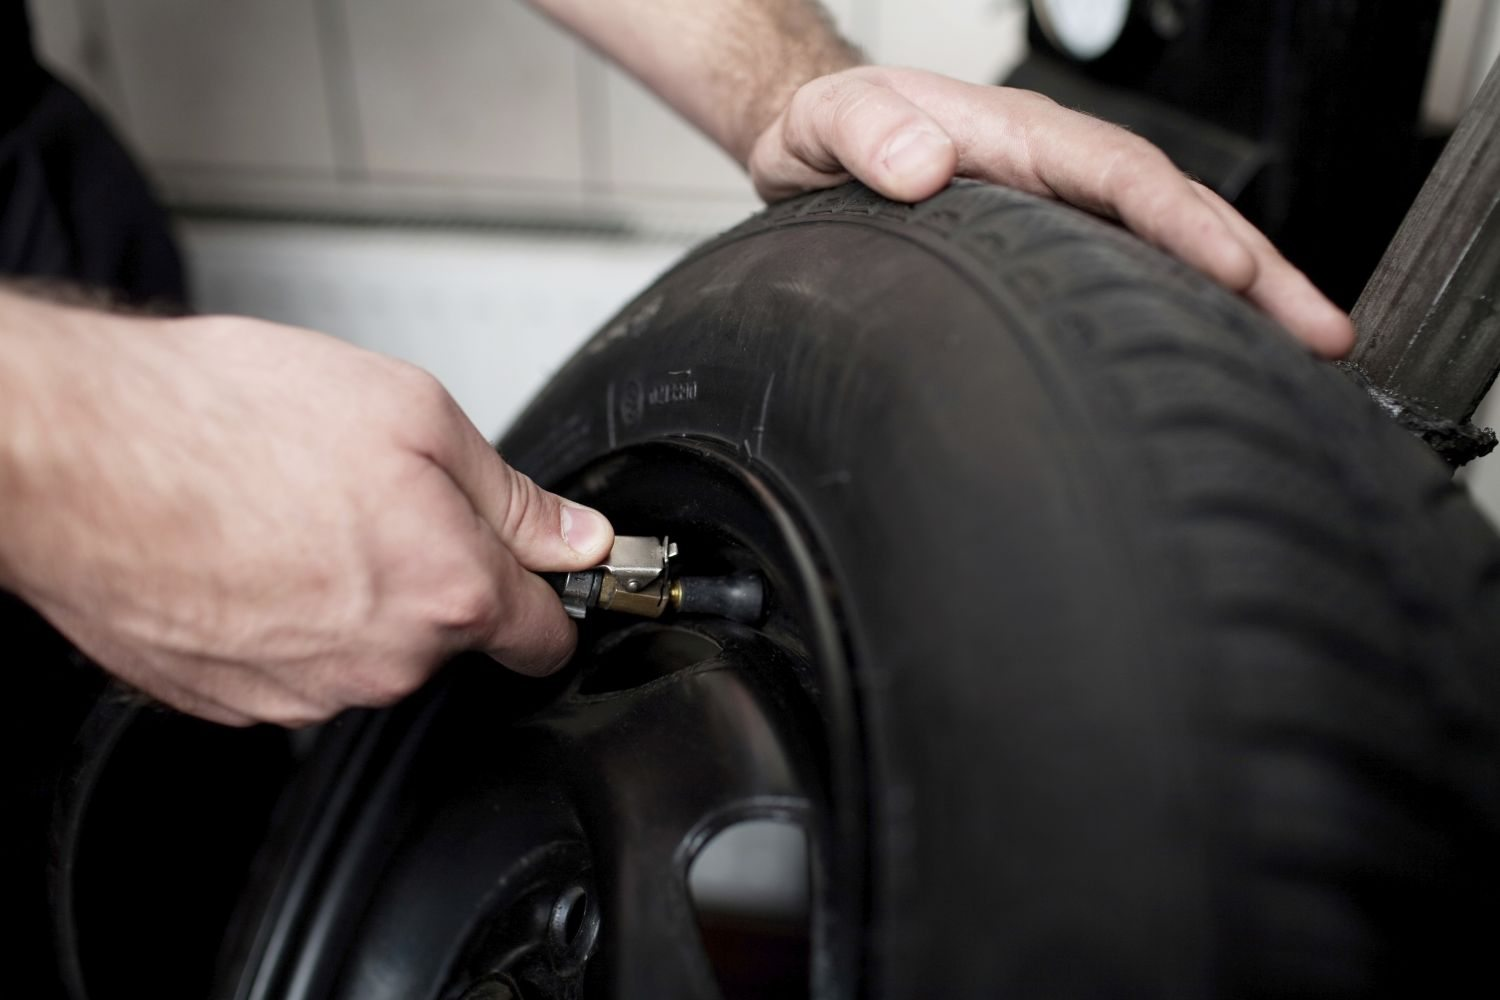 edinburgh mot test tyres